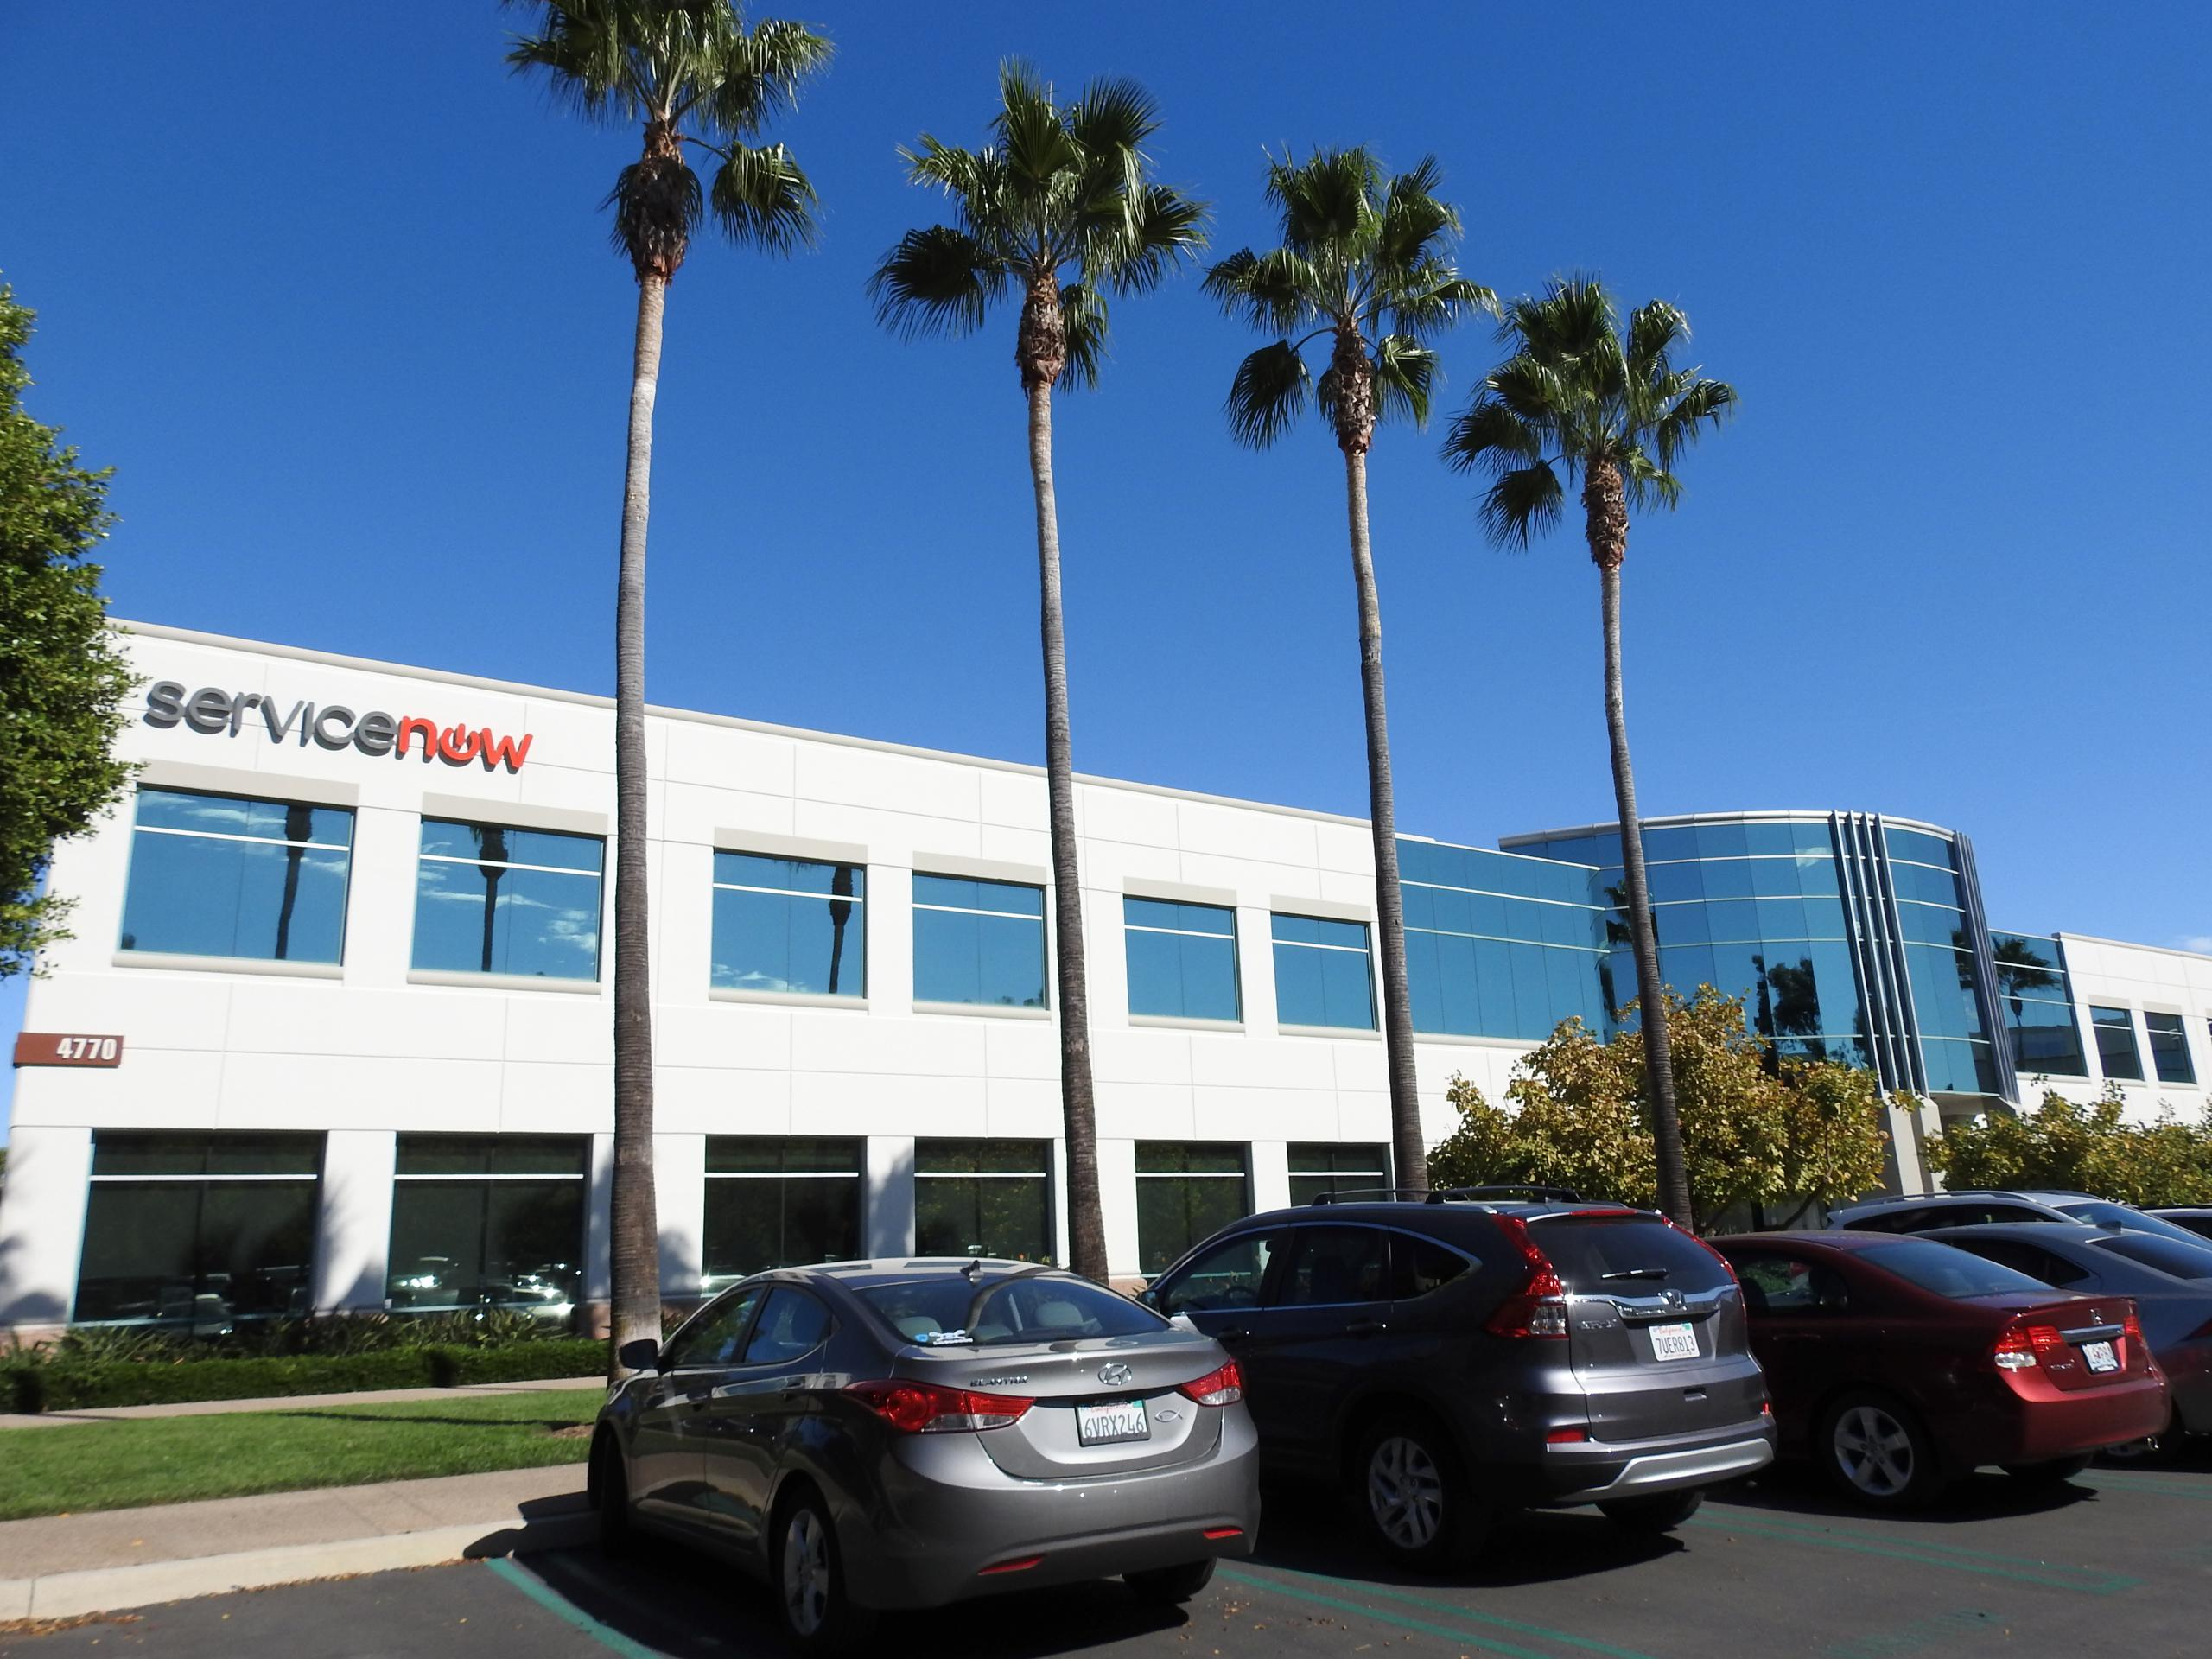 ServiceNow office in San Diego, California.